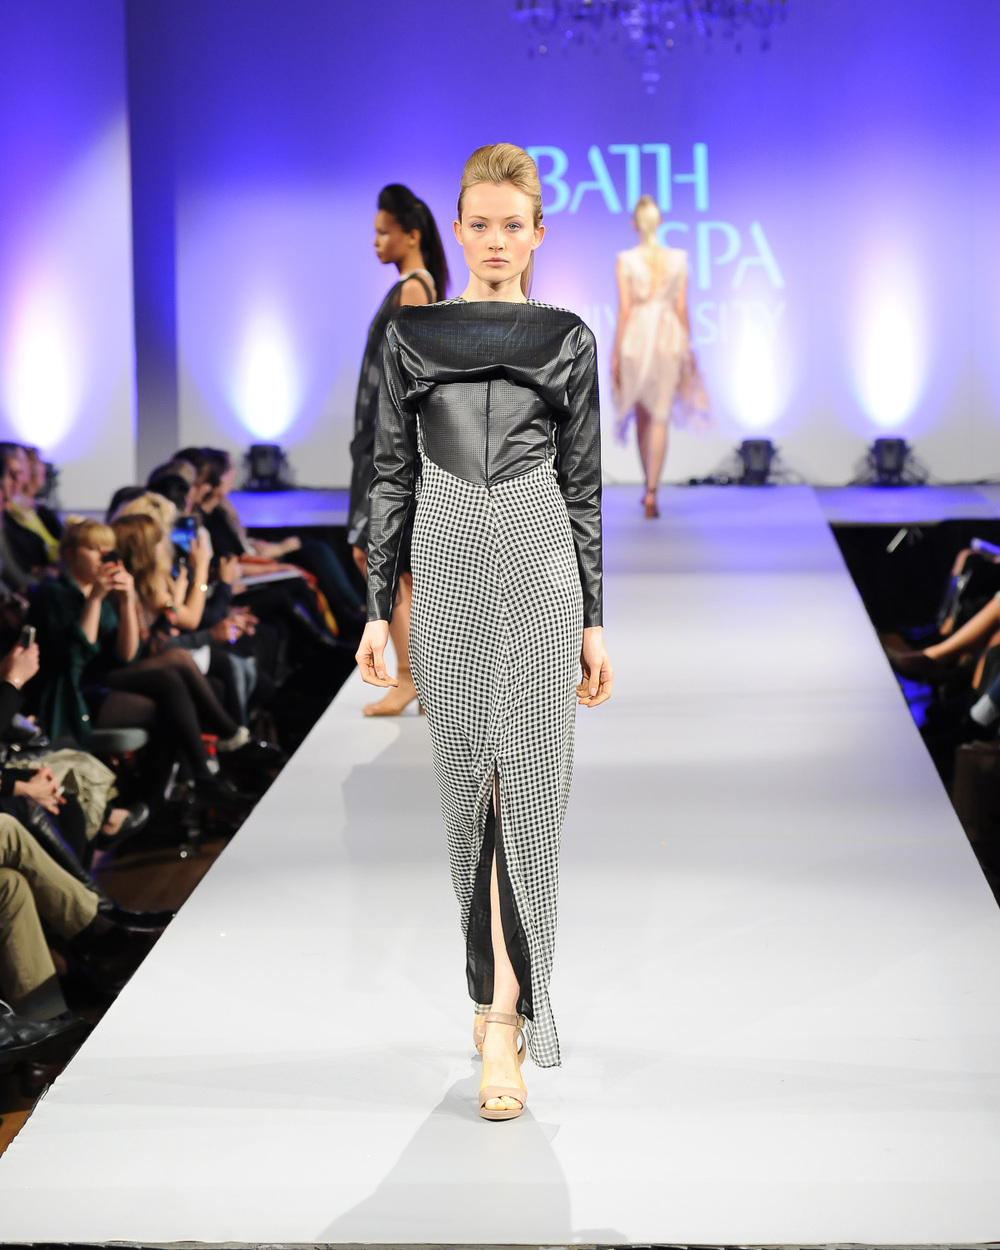 Bath-in-fashion-BIBA-Fashion-Show-1.jpg